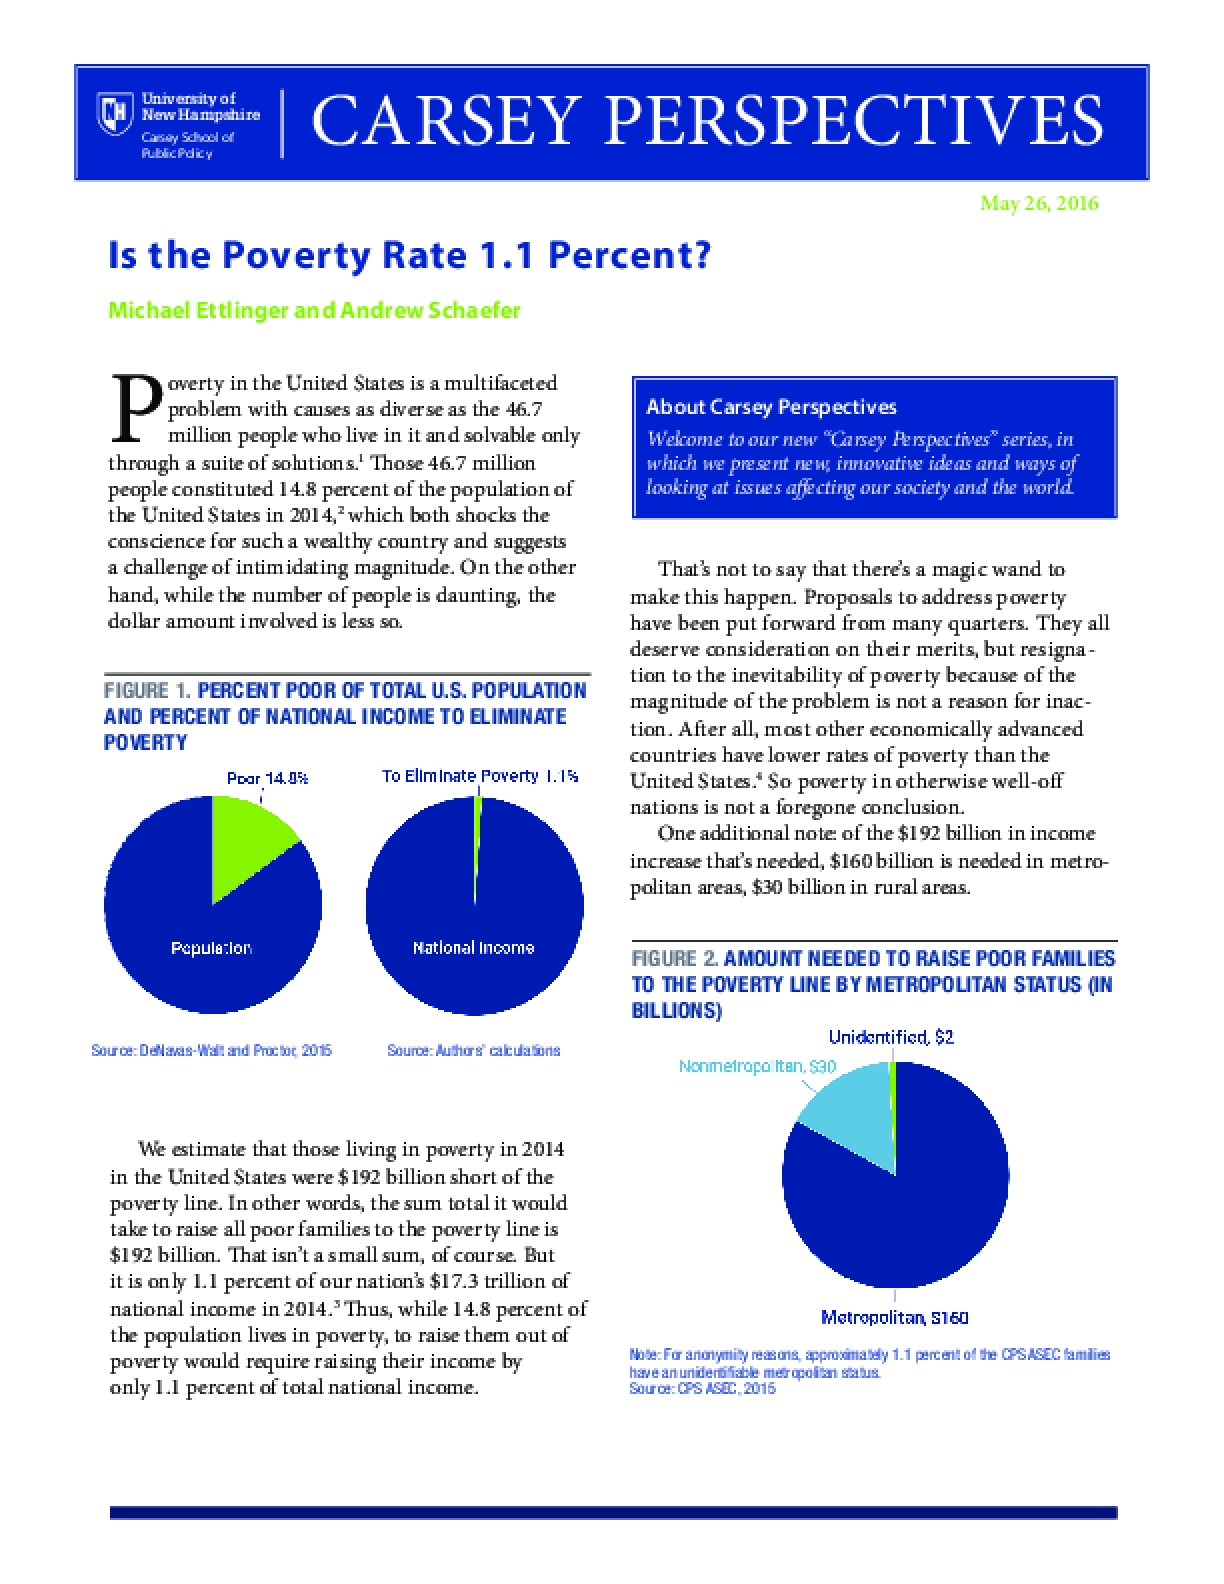 Carsey Perspective: Is the Poverty Rate 1.1 Percent?